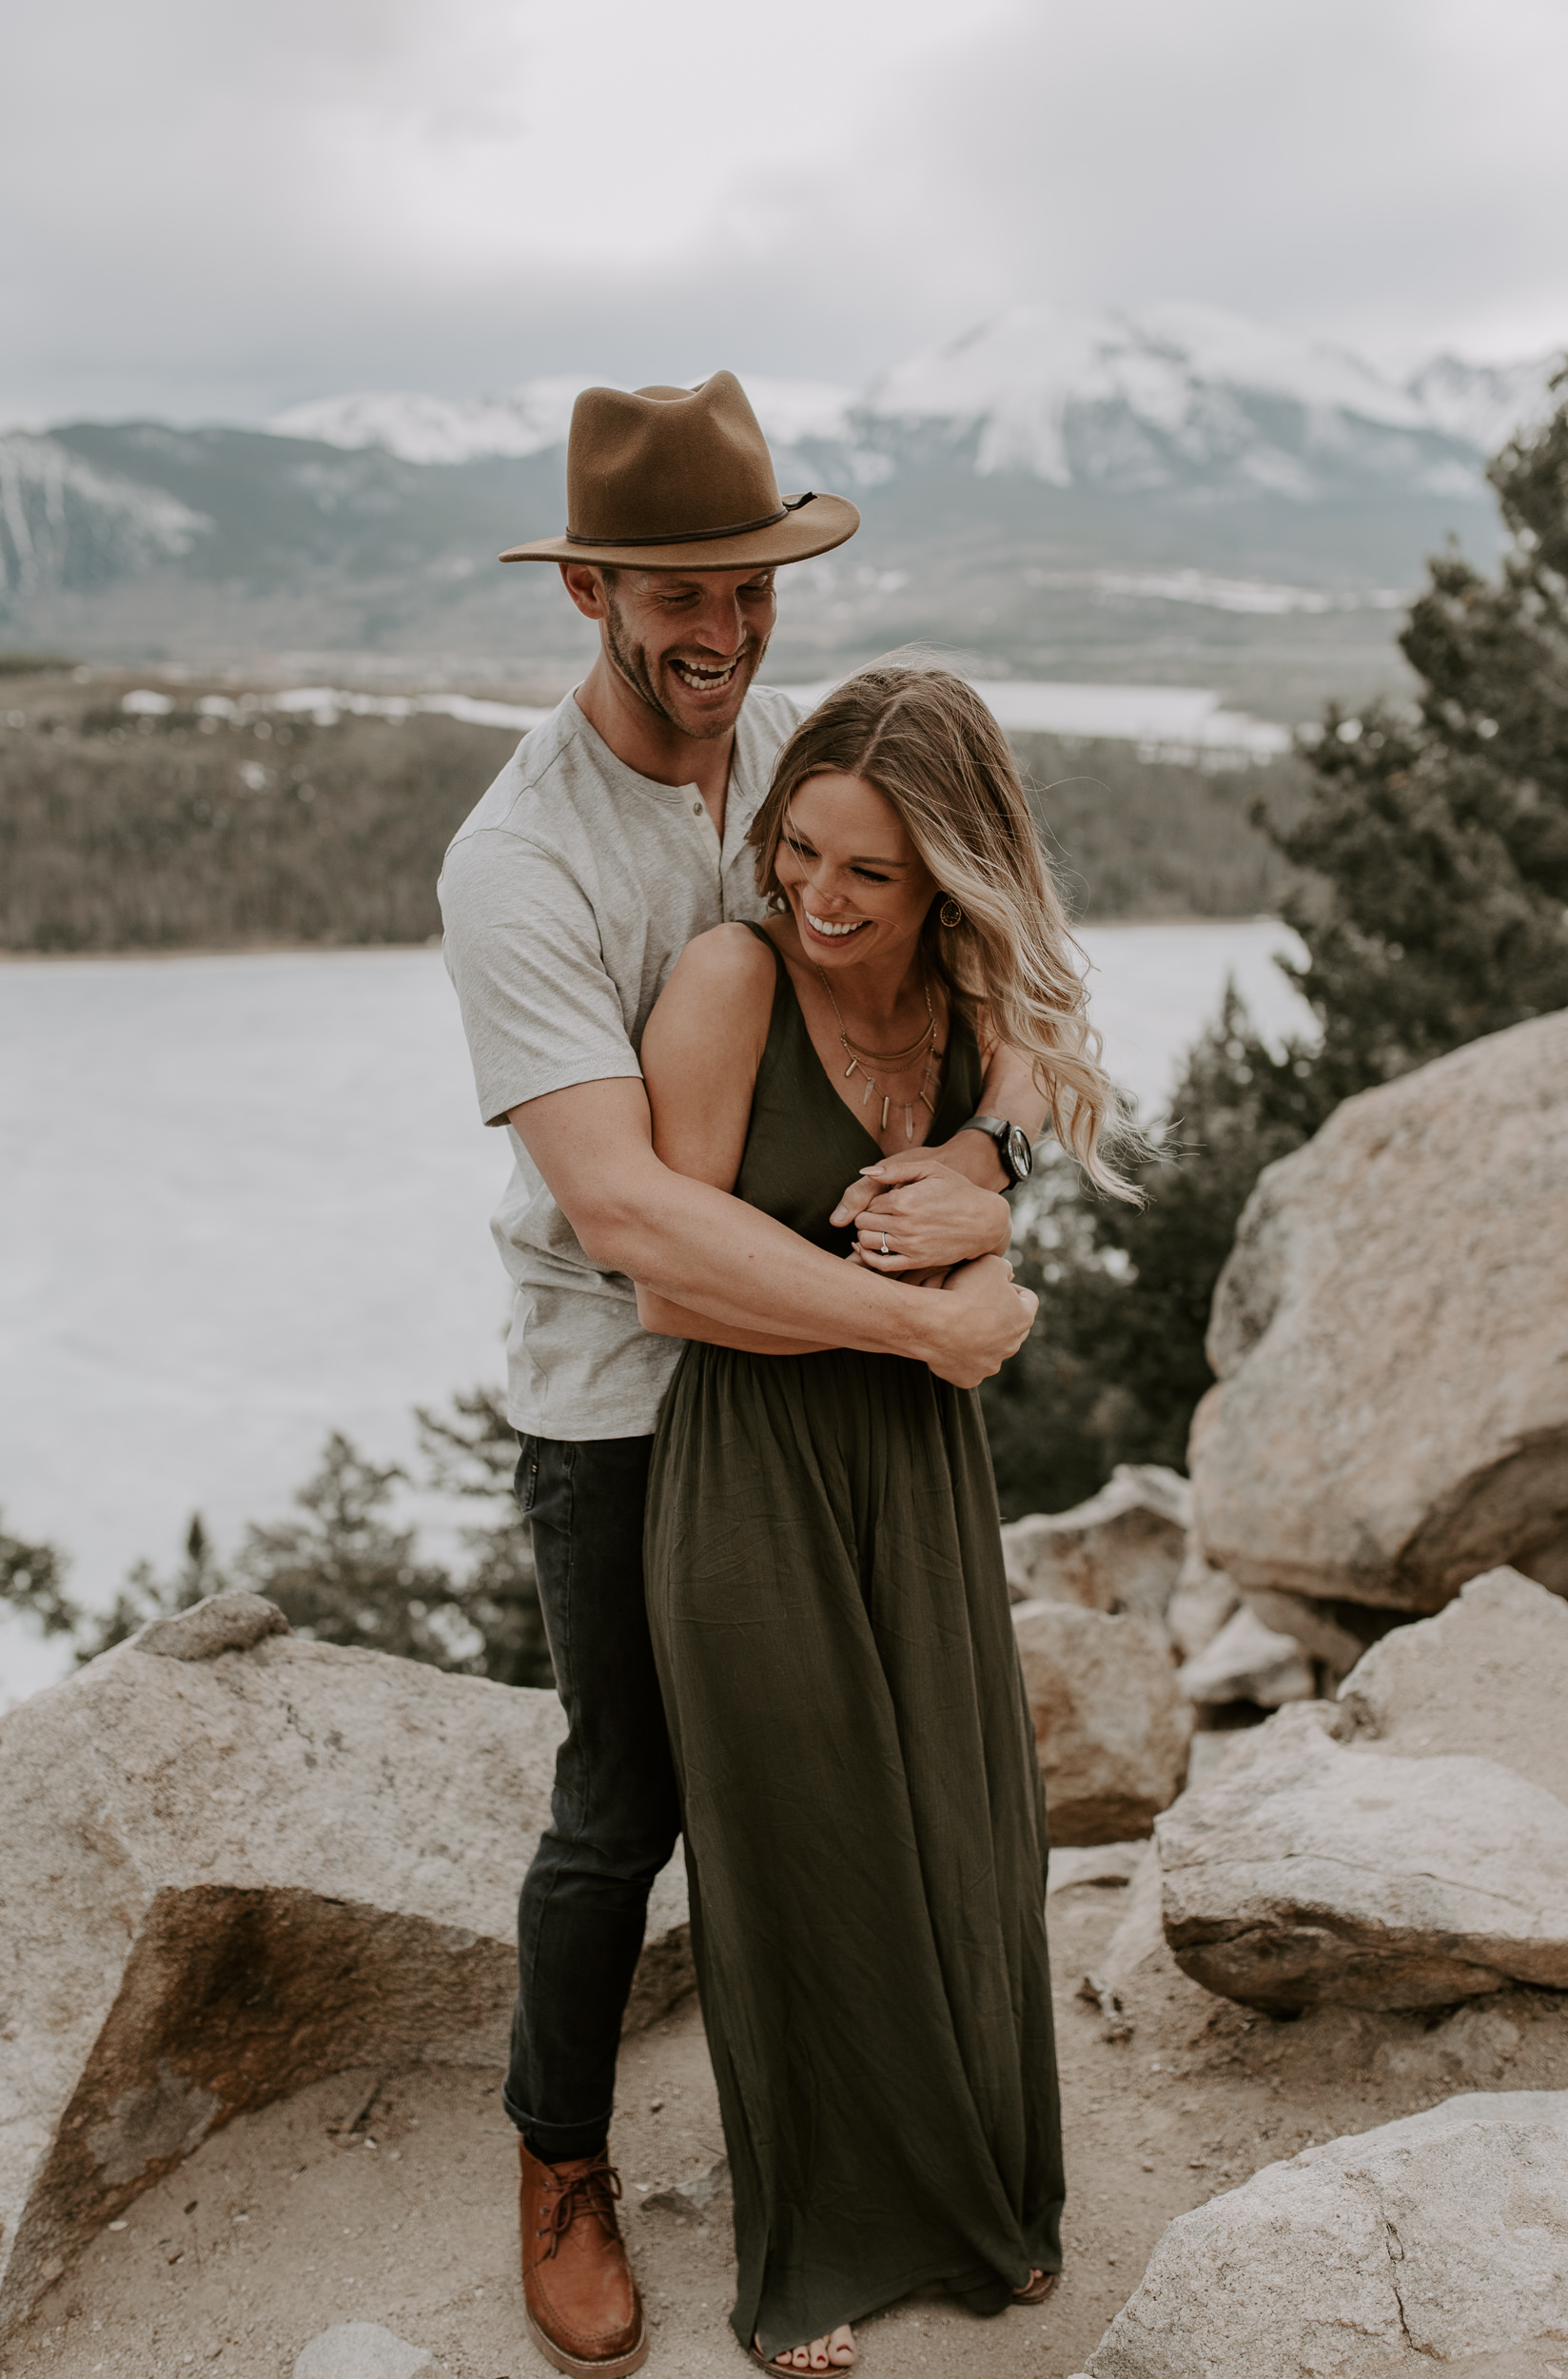 Mountain engagement session at Sapphire Point in Dillon, Colorado. Colorado wedding photographer